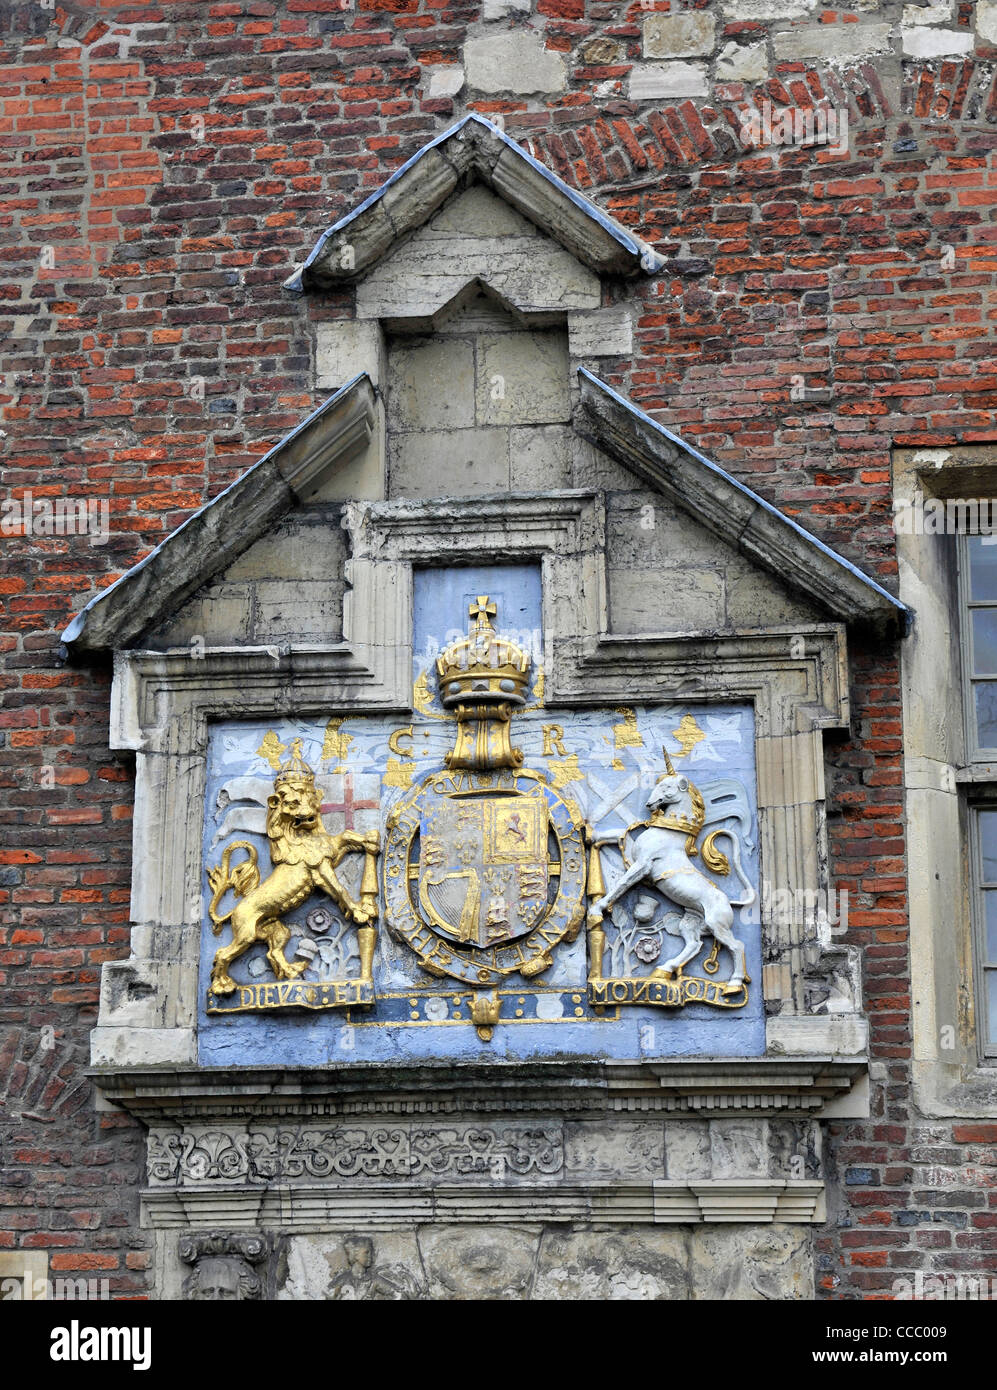 Coat of Arms of Charles I over the Door of The King's Manor York - Stock Image